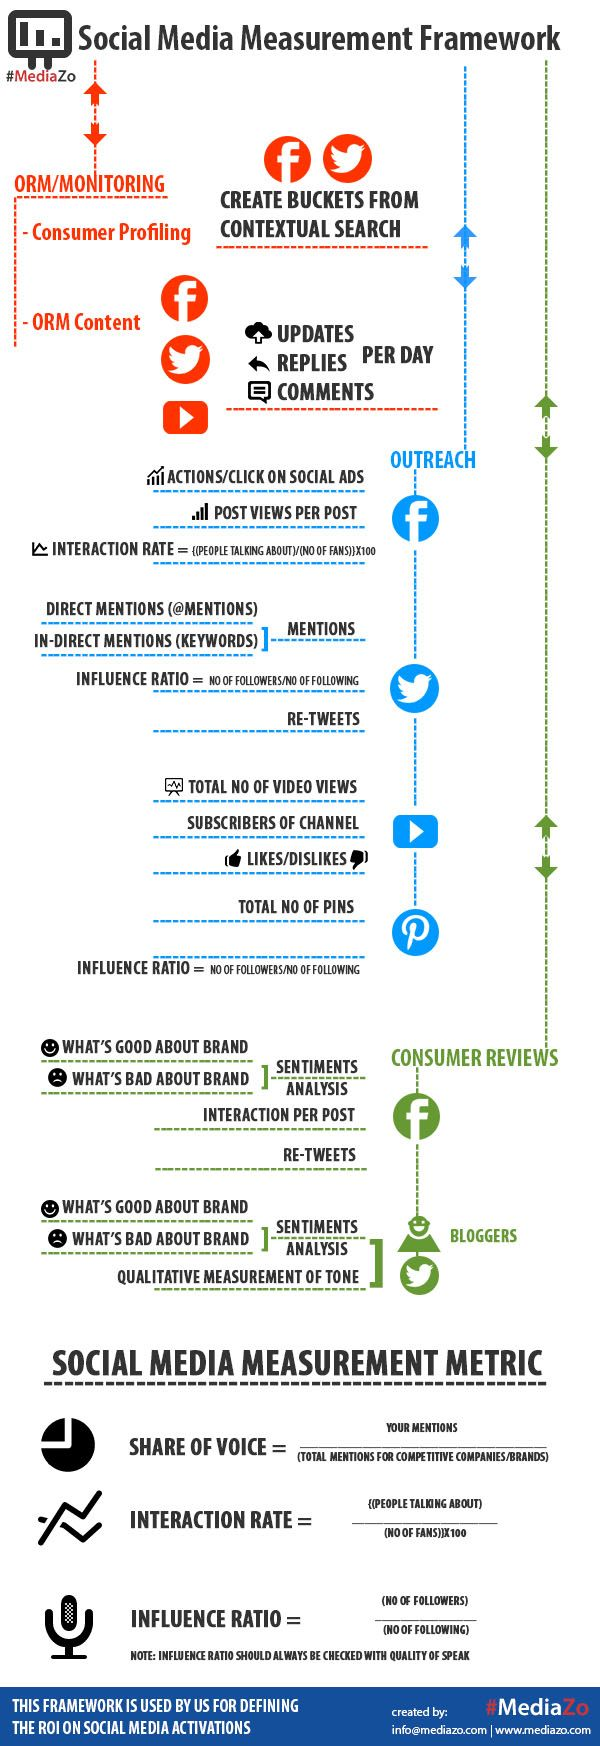 What Are Some Key Social Media Measurement Frameworks And Metrics? #infographic